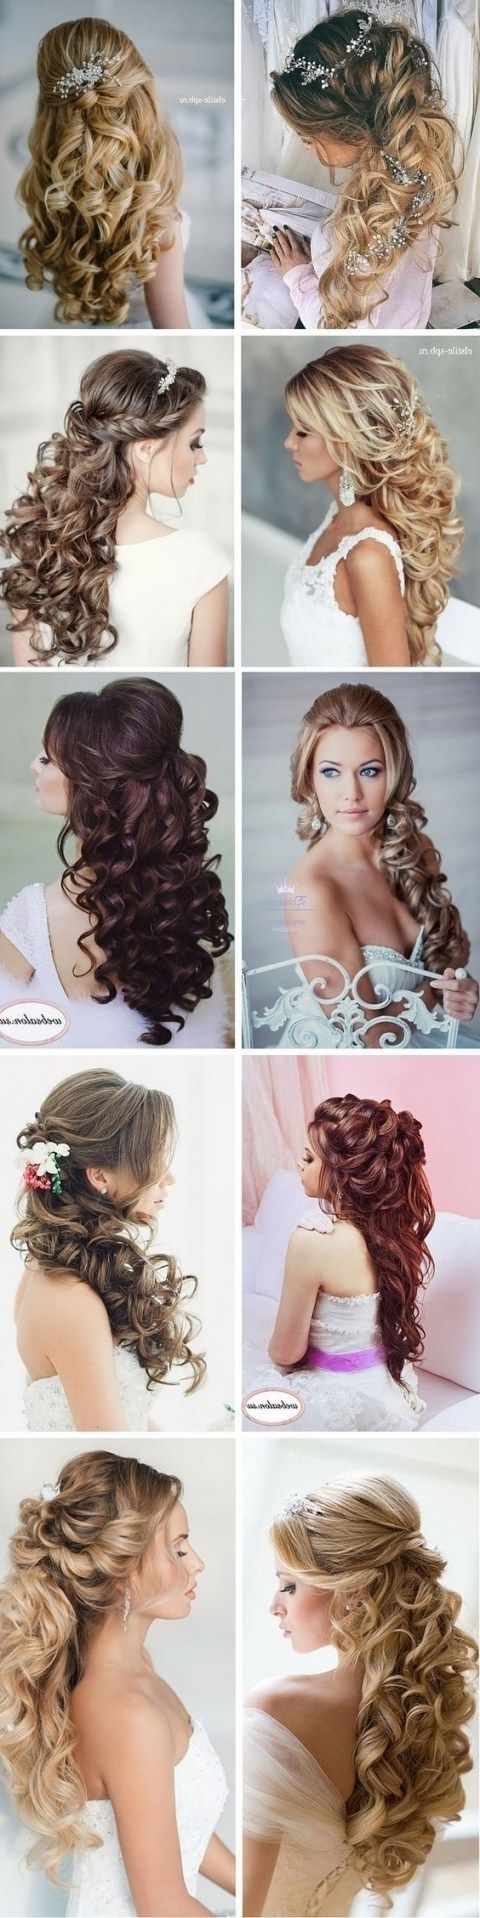 Wedding With Regard To Well Known Creative And Elegant Wedding Hairstyles For Long Hair (View 15 of 15)